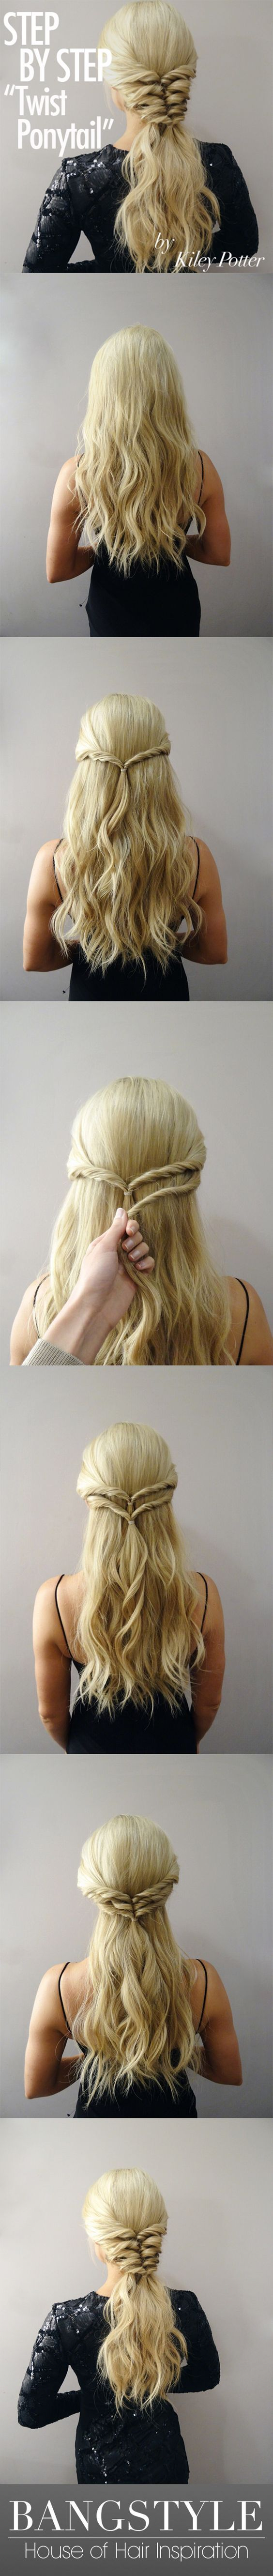 20 Gorgeous Braided Hairstyles For Long Hair - Trend To Wear: